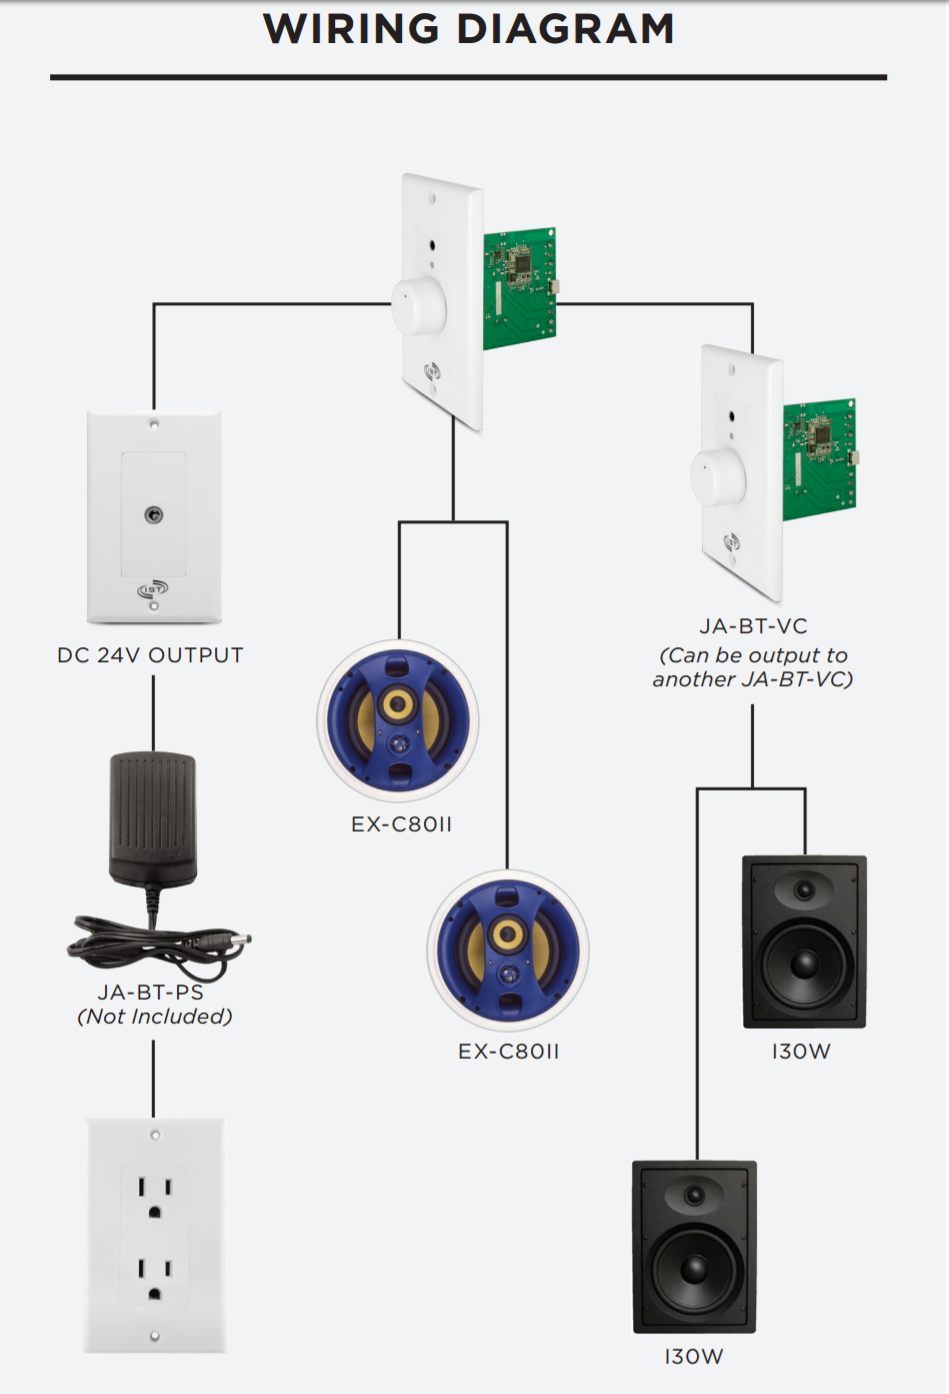 Wiring Diagram | IST Bluetooth Volume Control with Amplifier